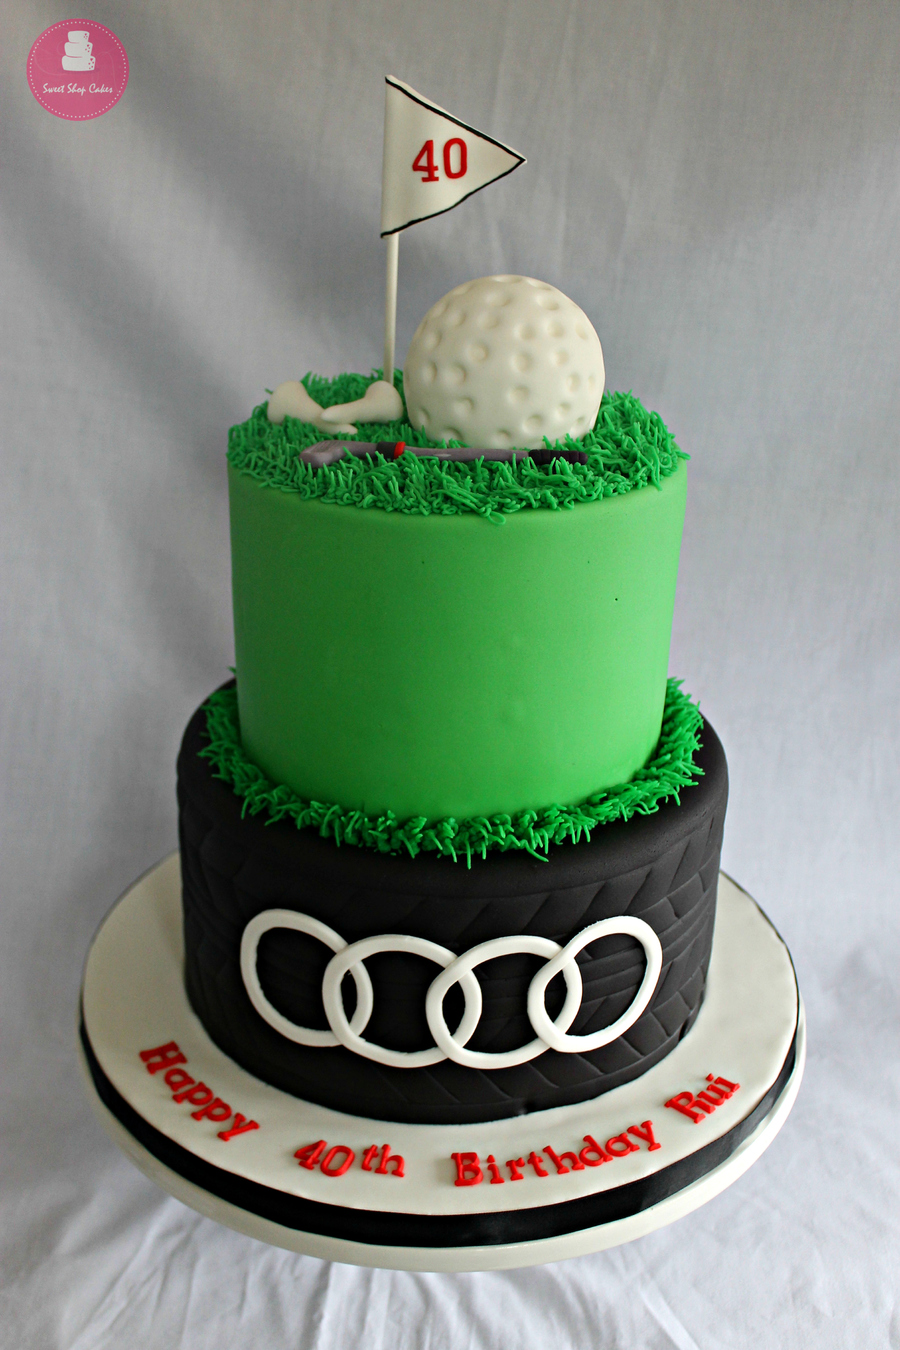 yVlLmFxUfE-golf-and-audi-themed-birthday-cake_900.jpg